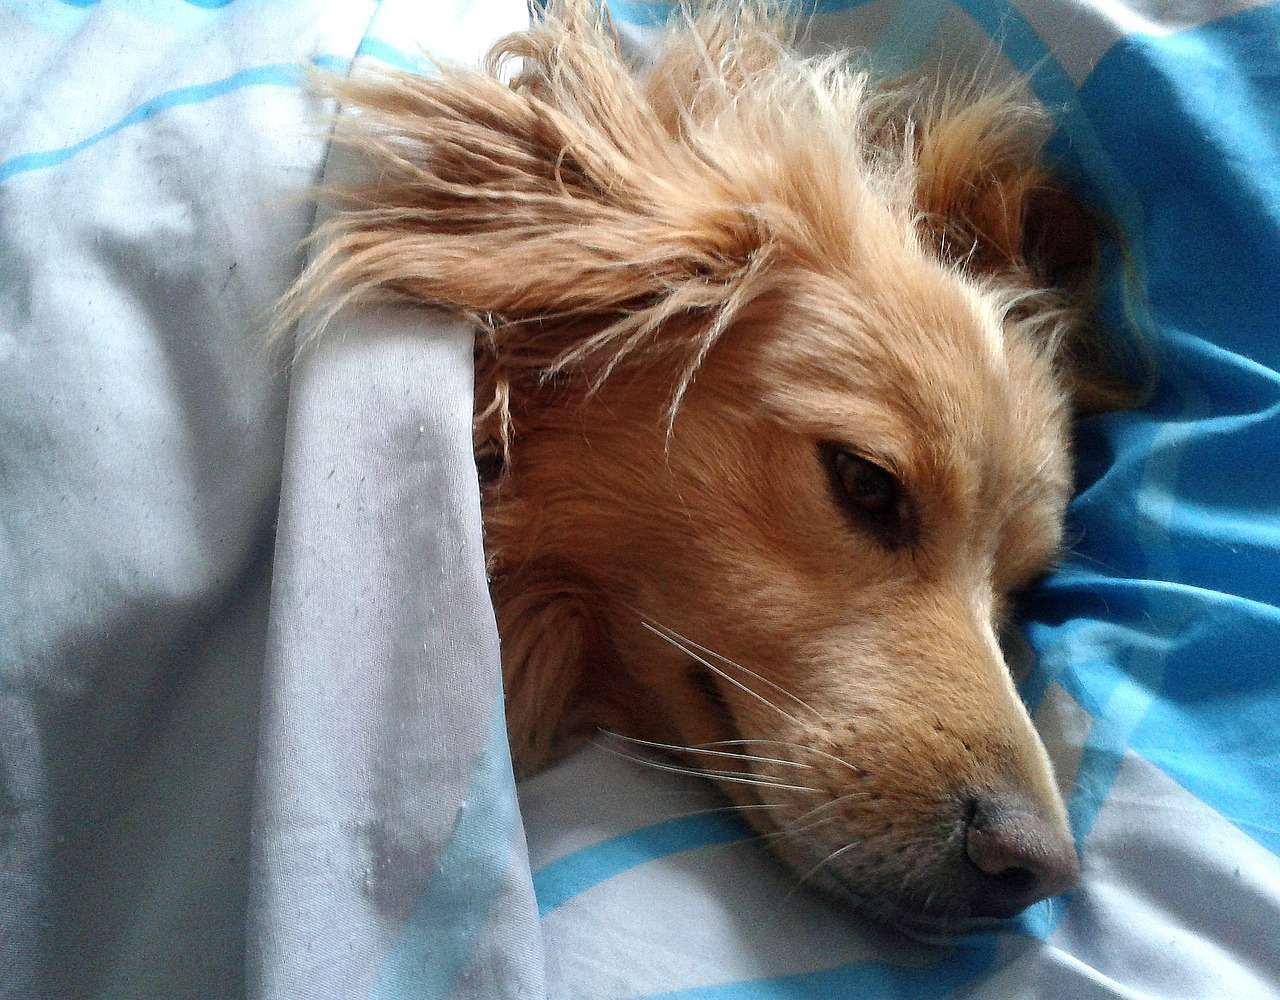 Dog tucked in for bed